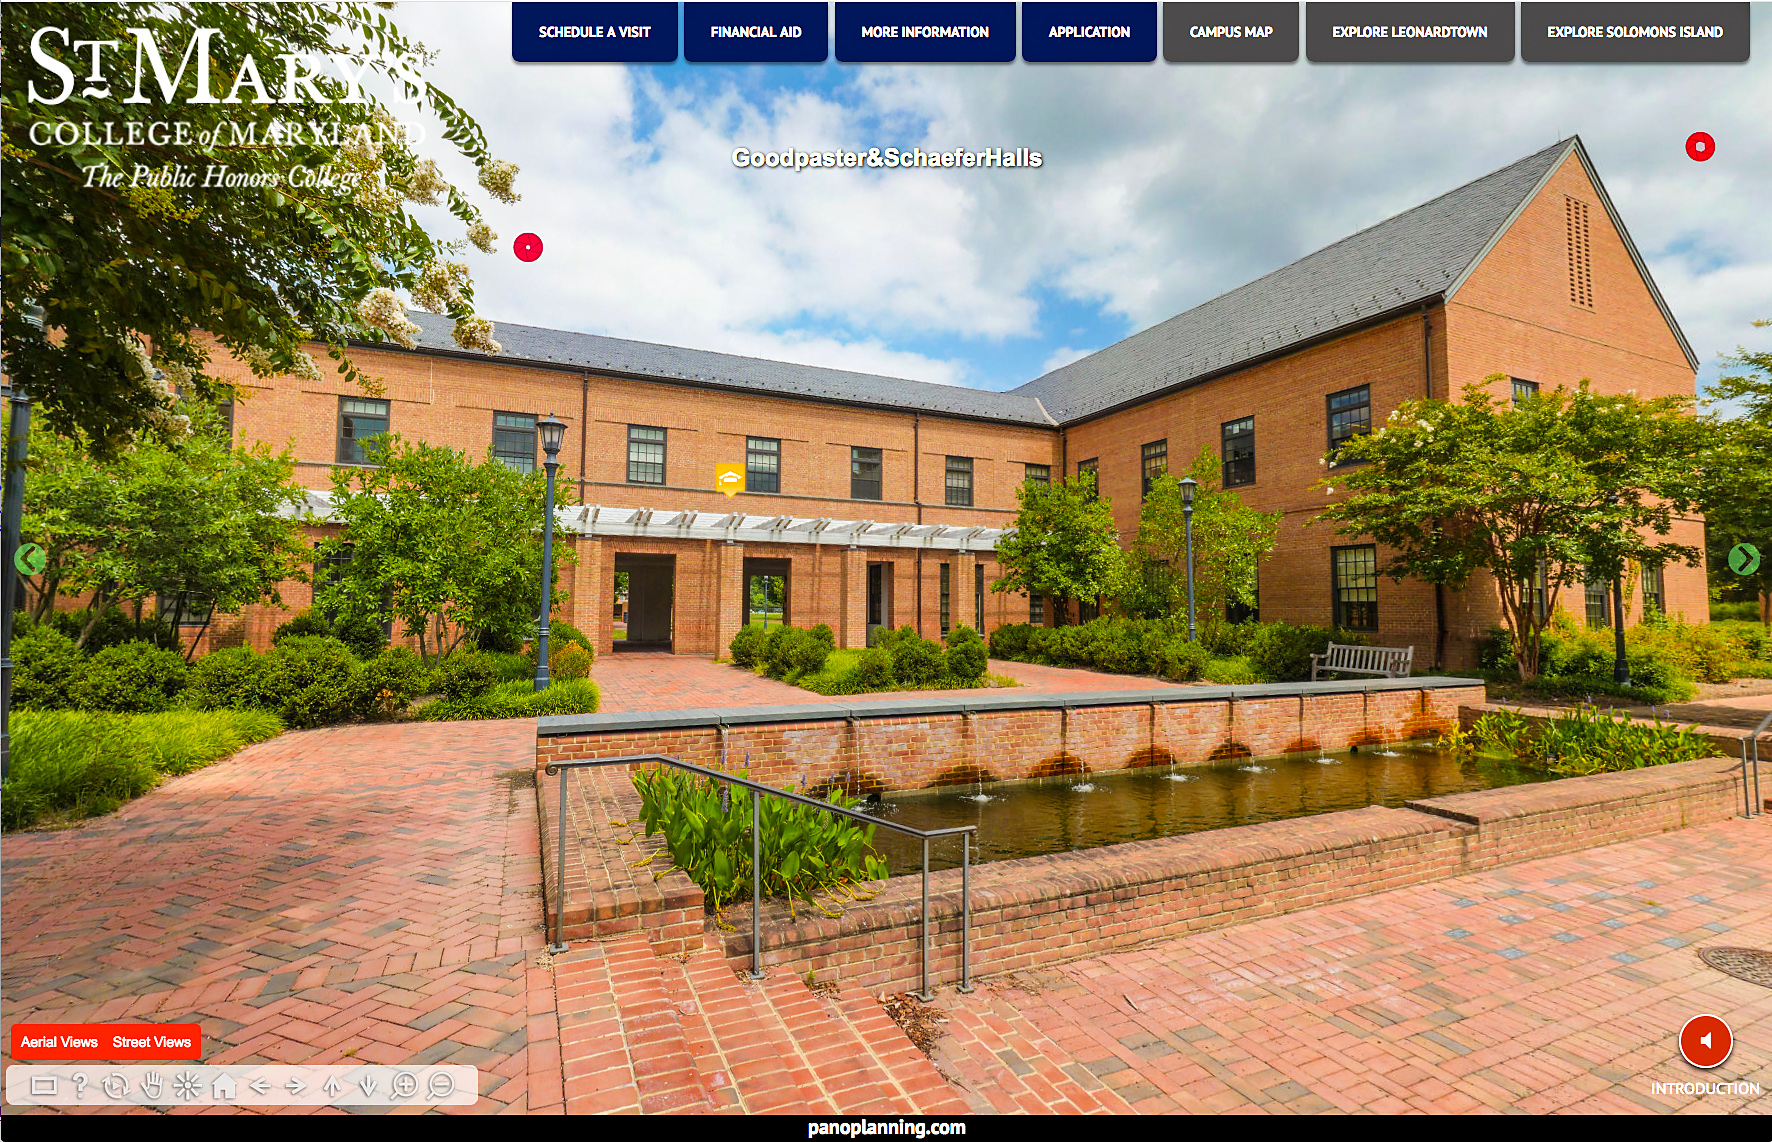 Ground level panorama from Virtual Discovery Tour of St. Mary's College.